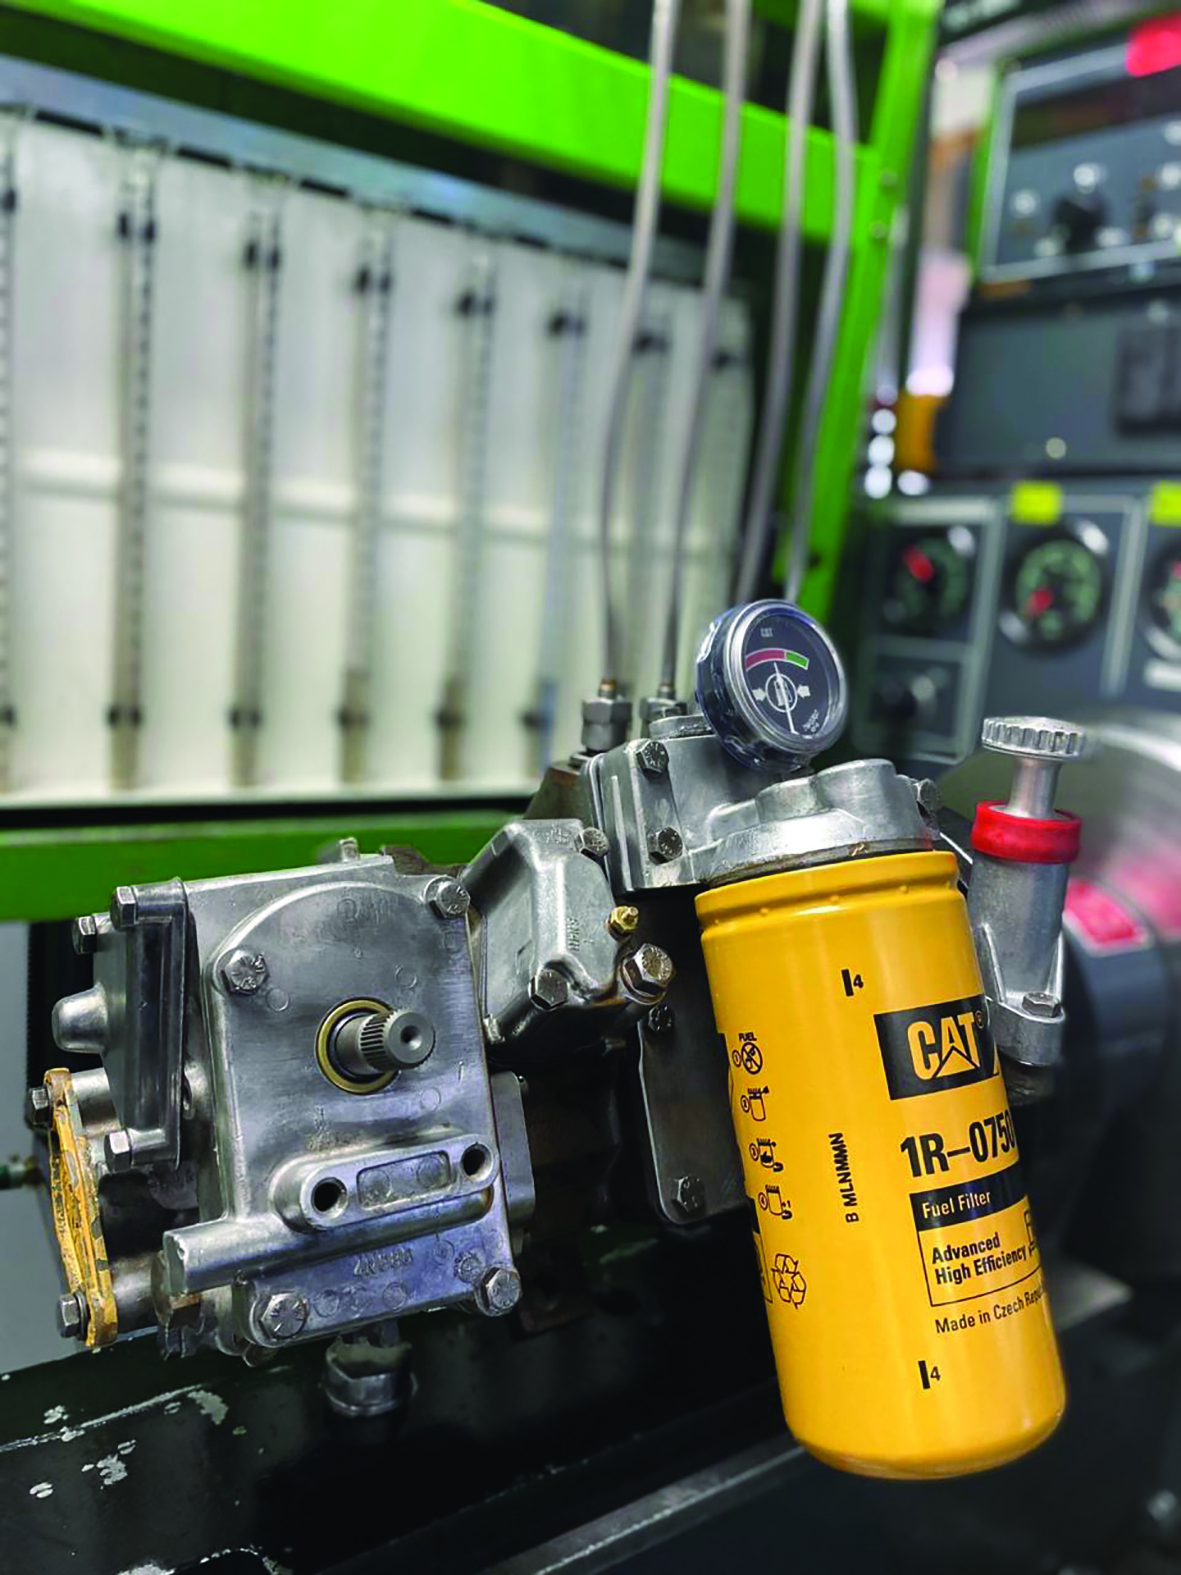 Specialist expertise and equipment allow Reef Fuel Injection Services to accurately diagnose faults in Cat fuel injection systems quickly and get these machines back on the road in double-quick time.